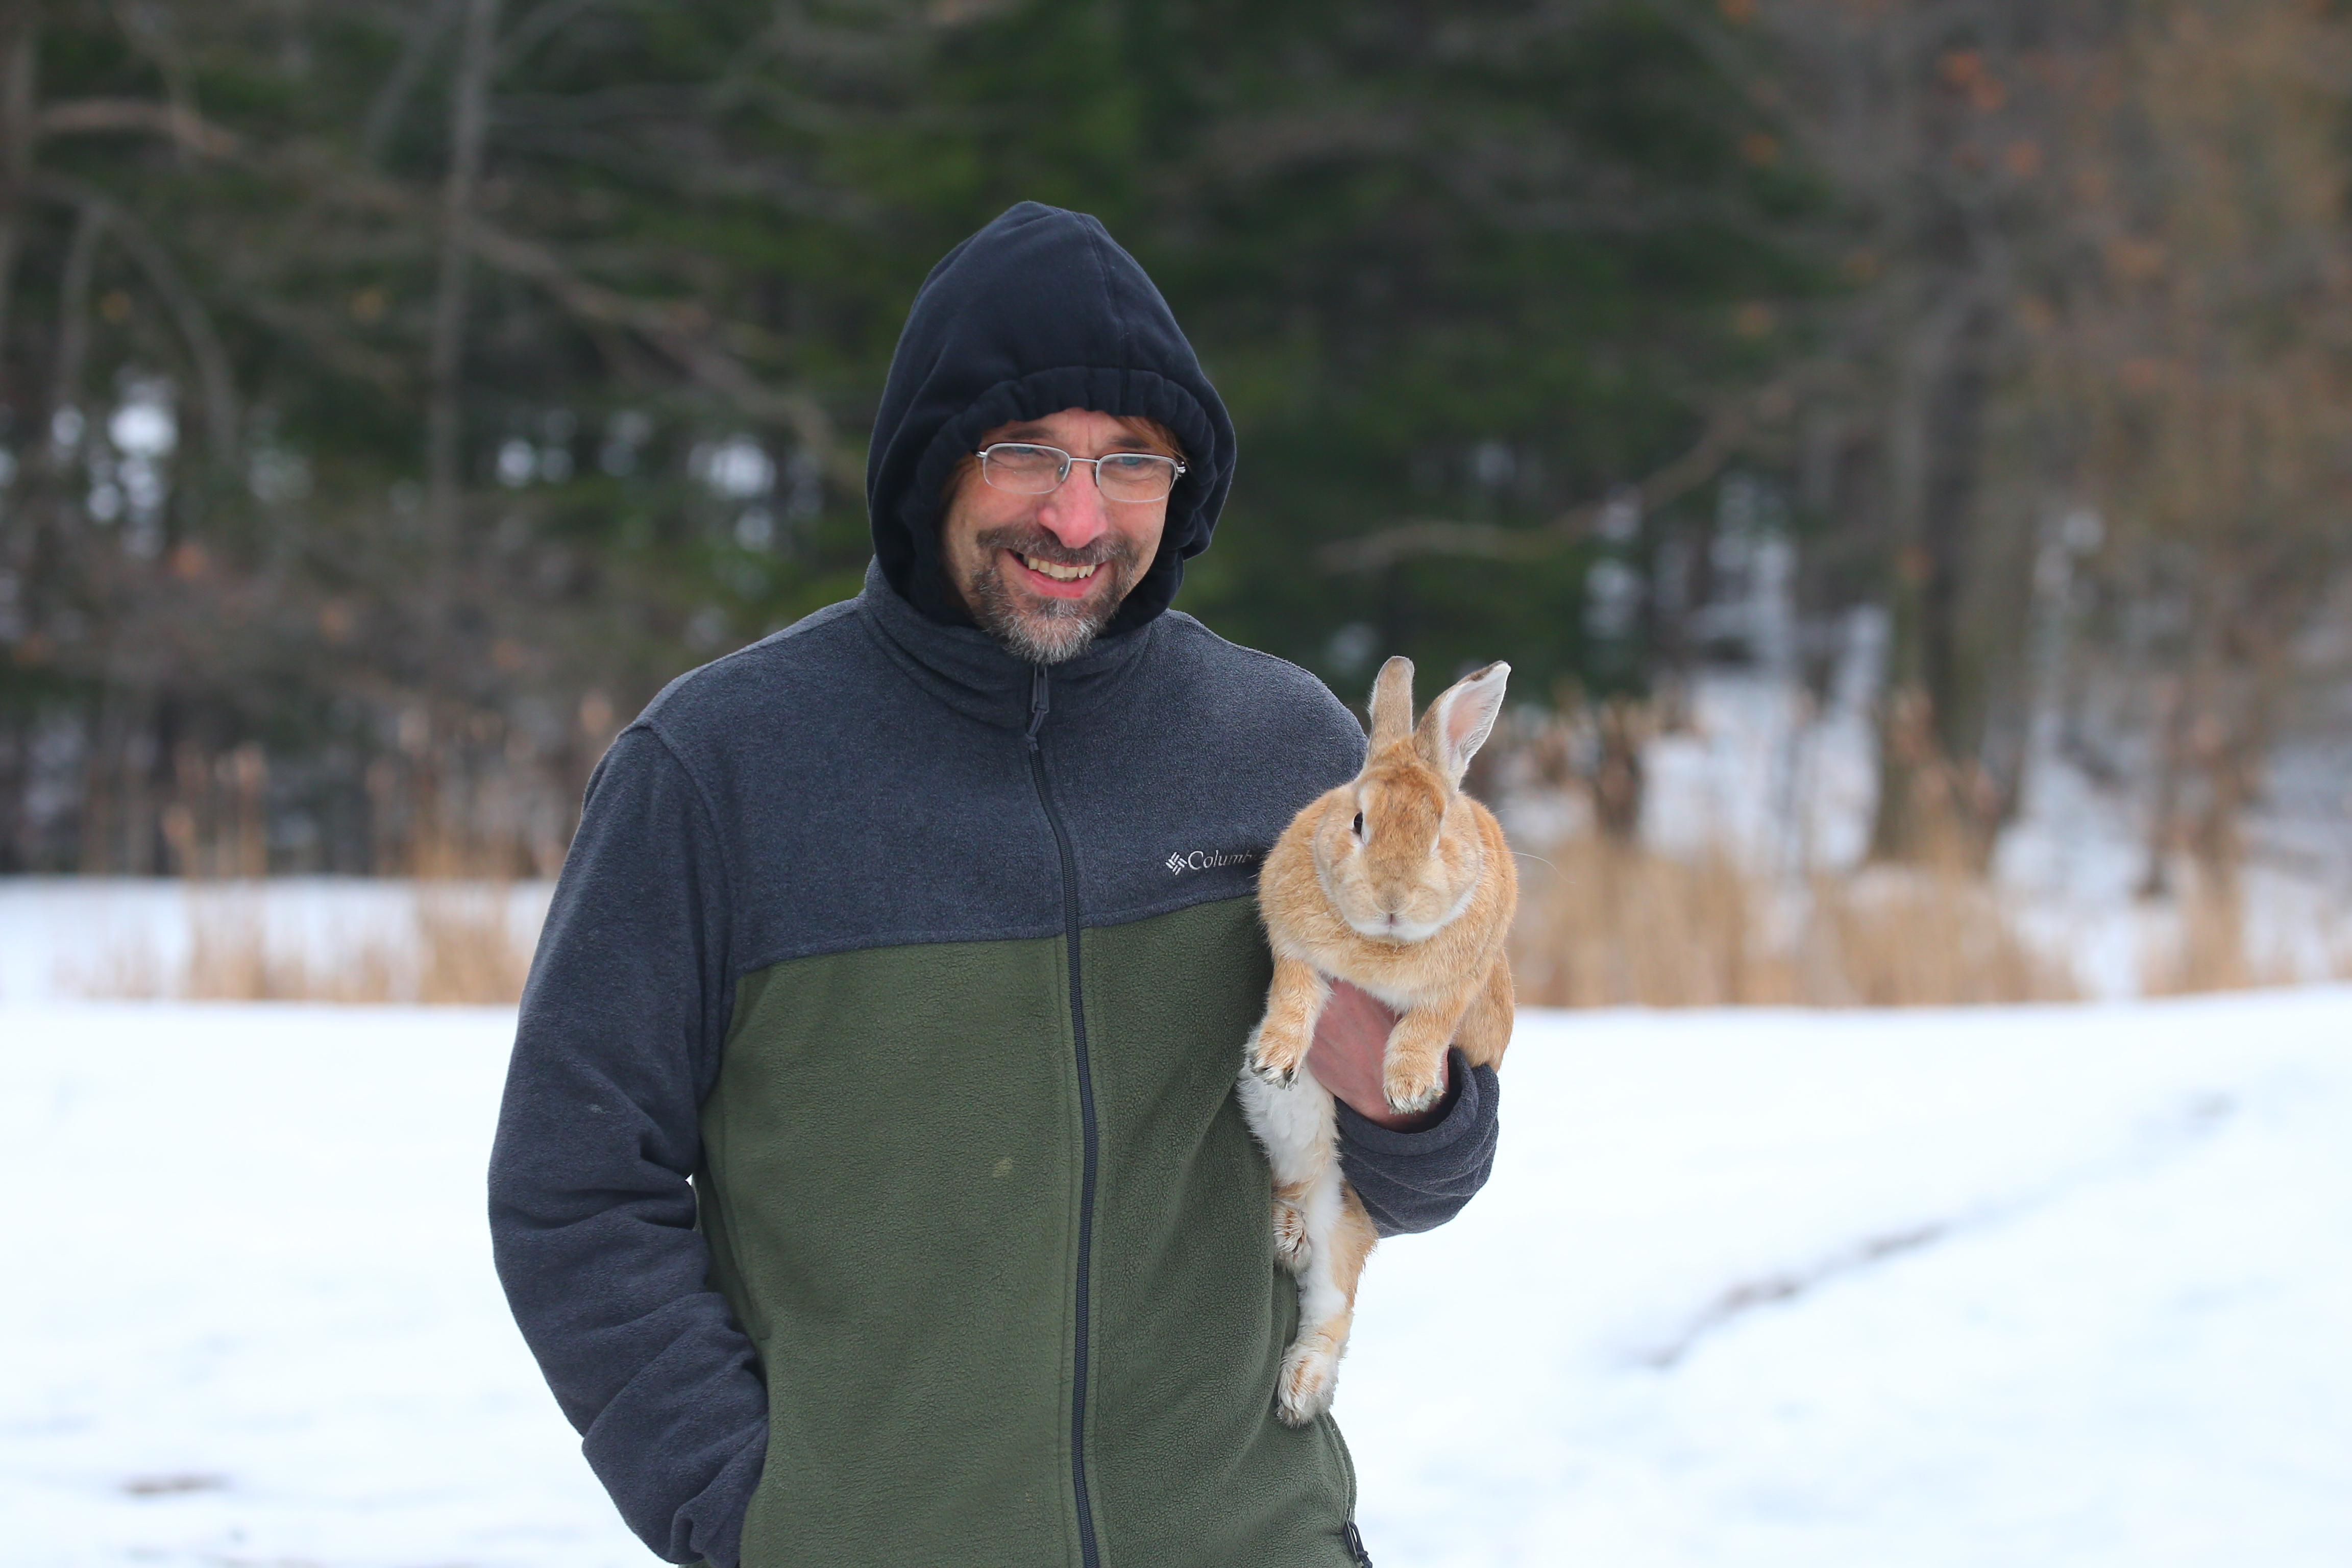 Jim Zubler wraps up a walk with his rabbit,  Cinnamon, at Chestnut Ridge Park, in Orchard Park, N.Y., on  Sunday,  Dec. 25, 2016. (John Hickey/Buffalo News)